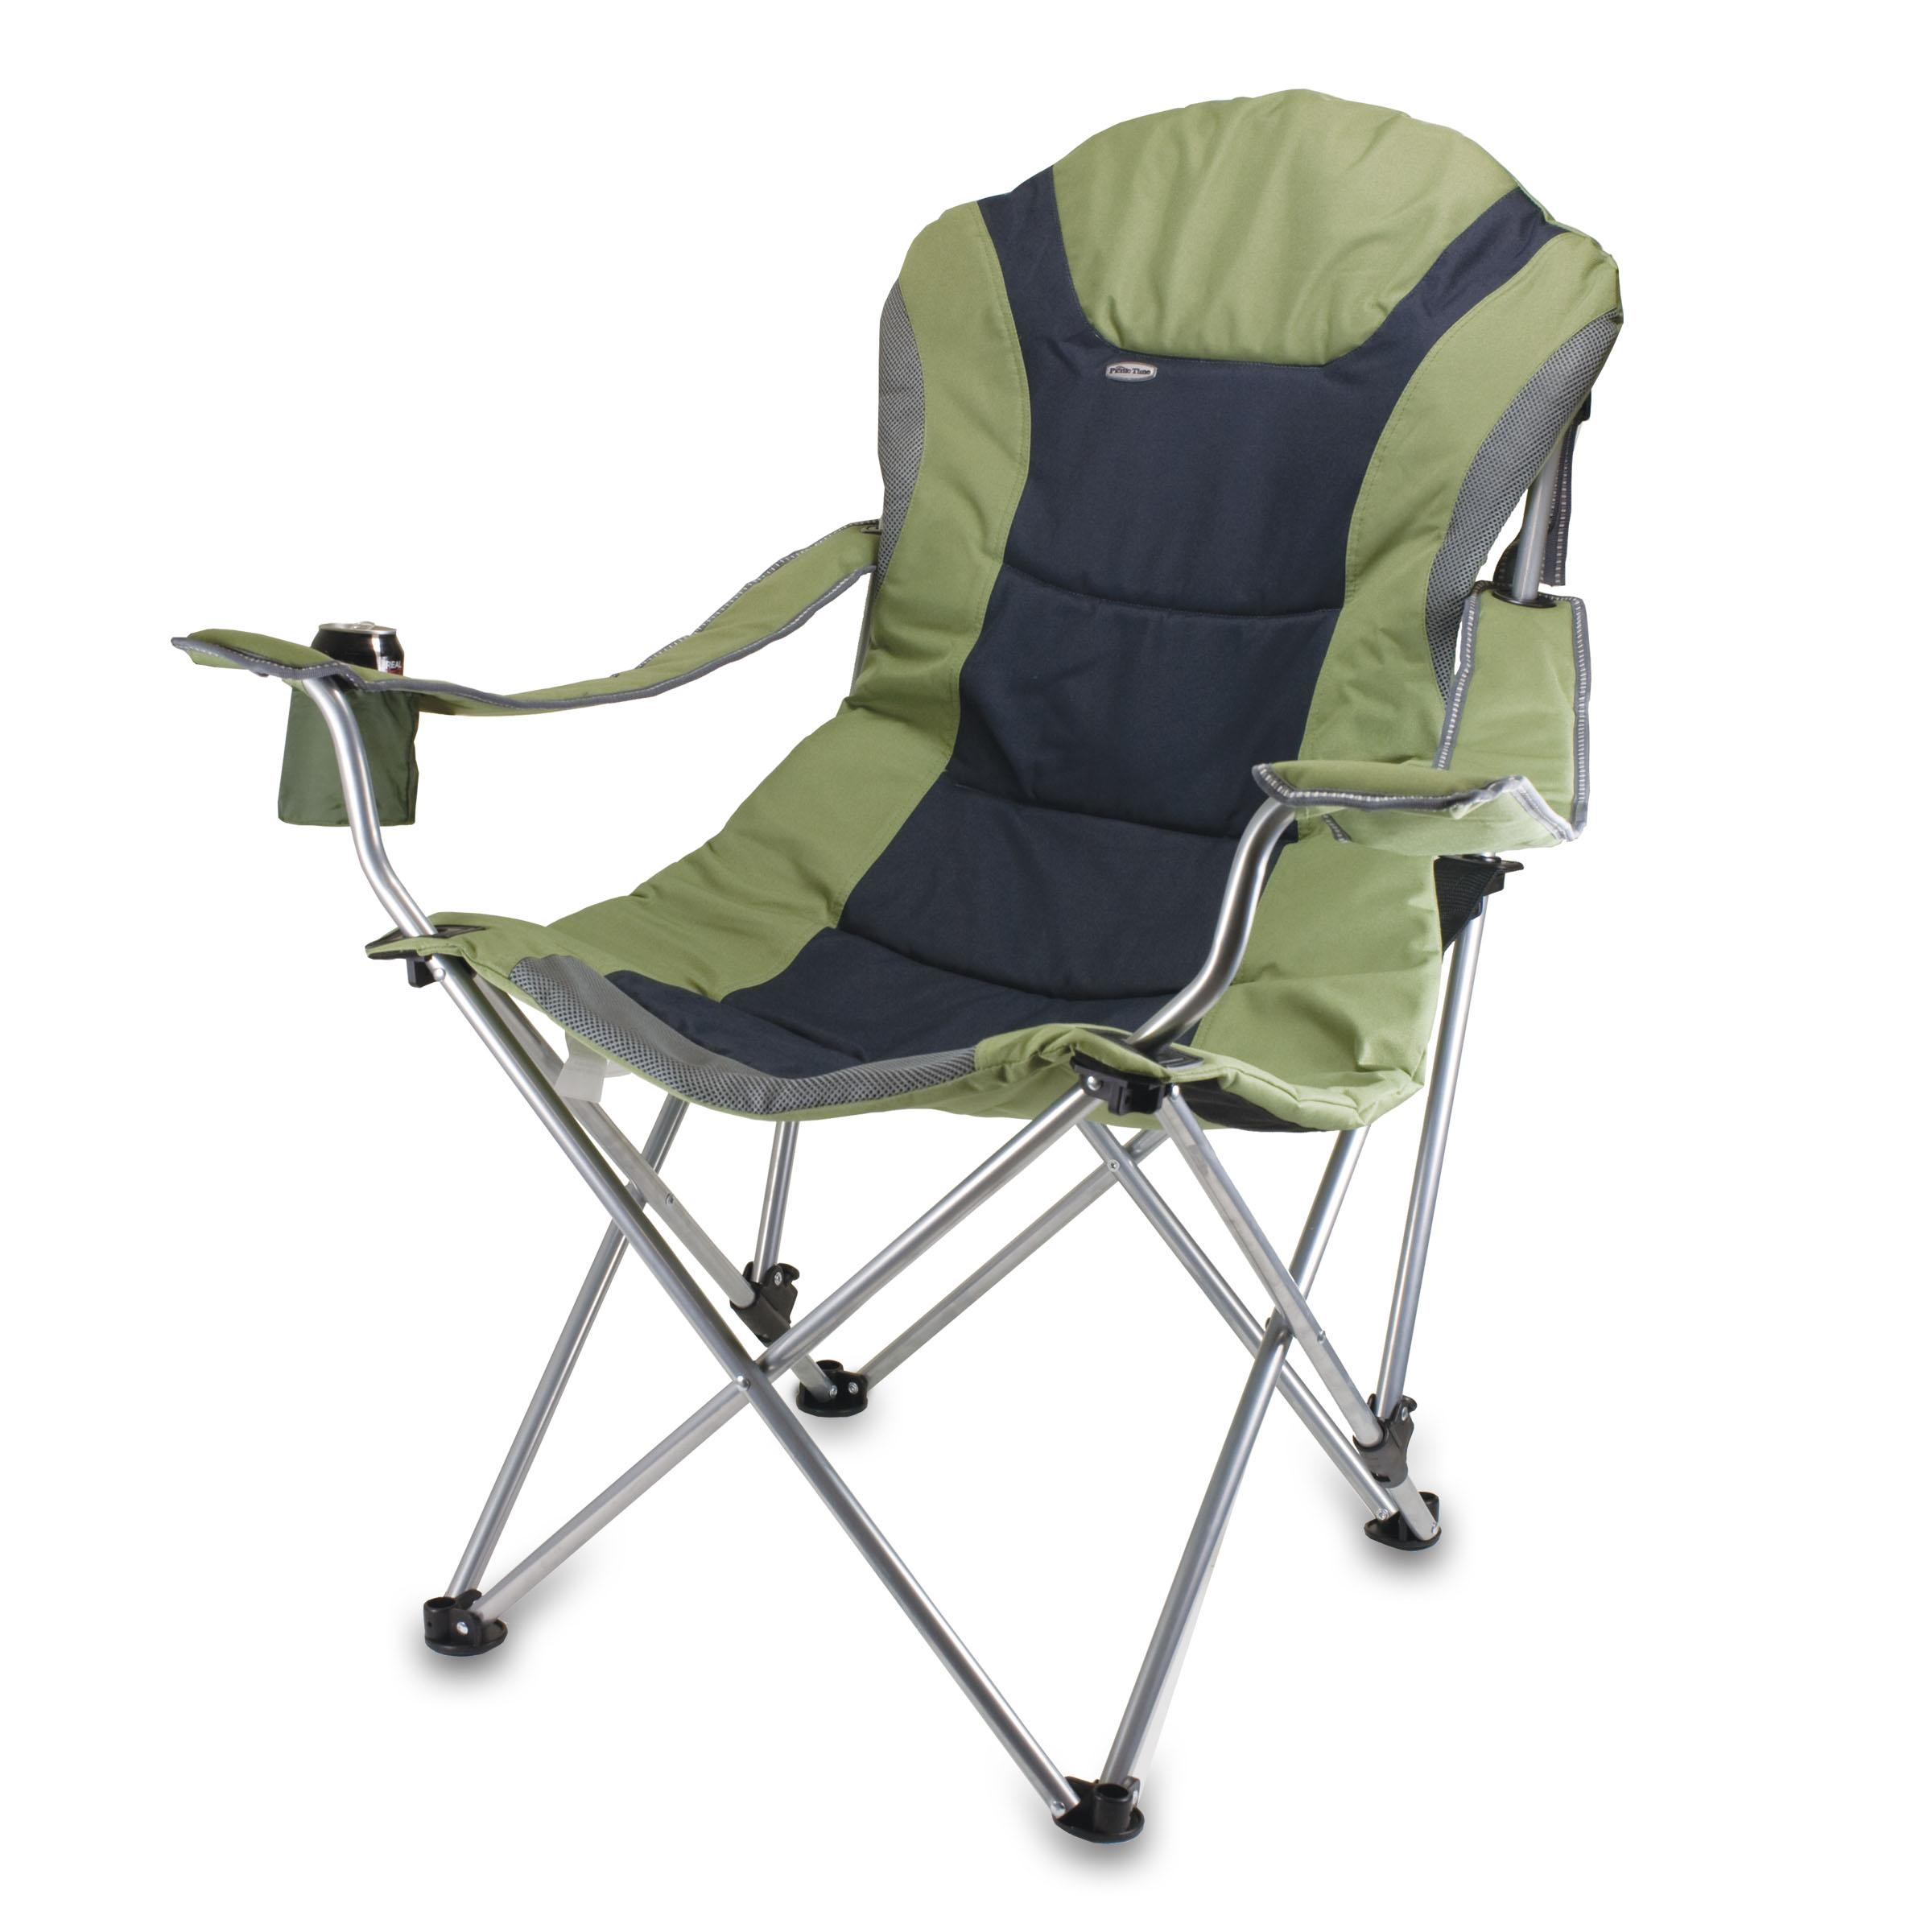 walmart mark folding camping chairs bbcd com director chair ip s ming